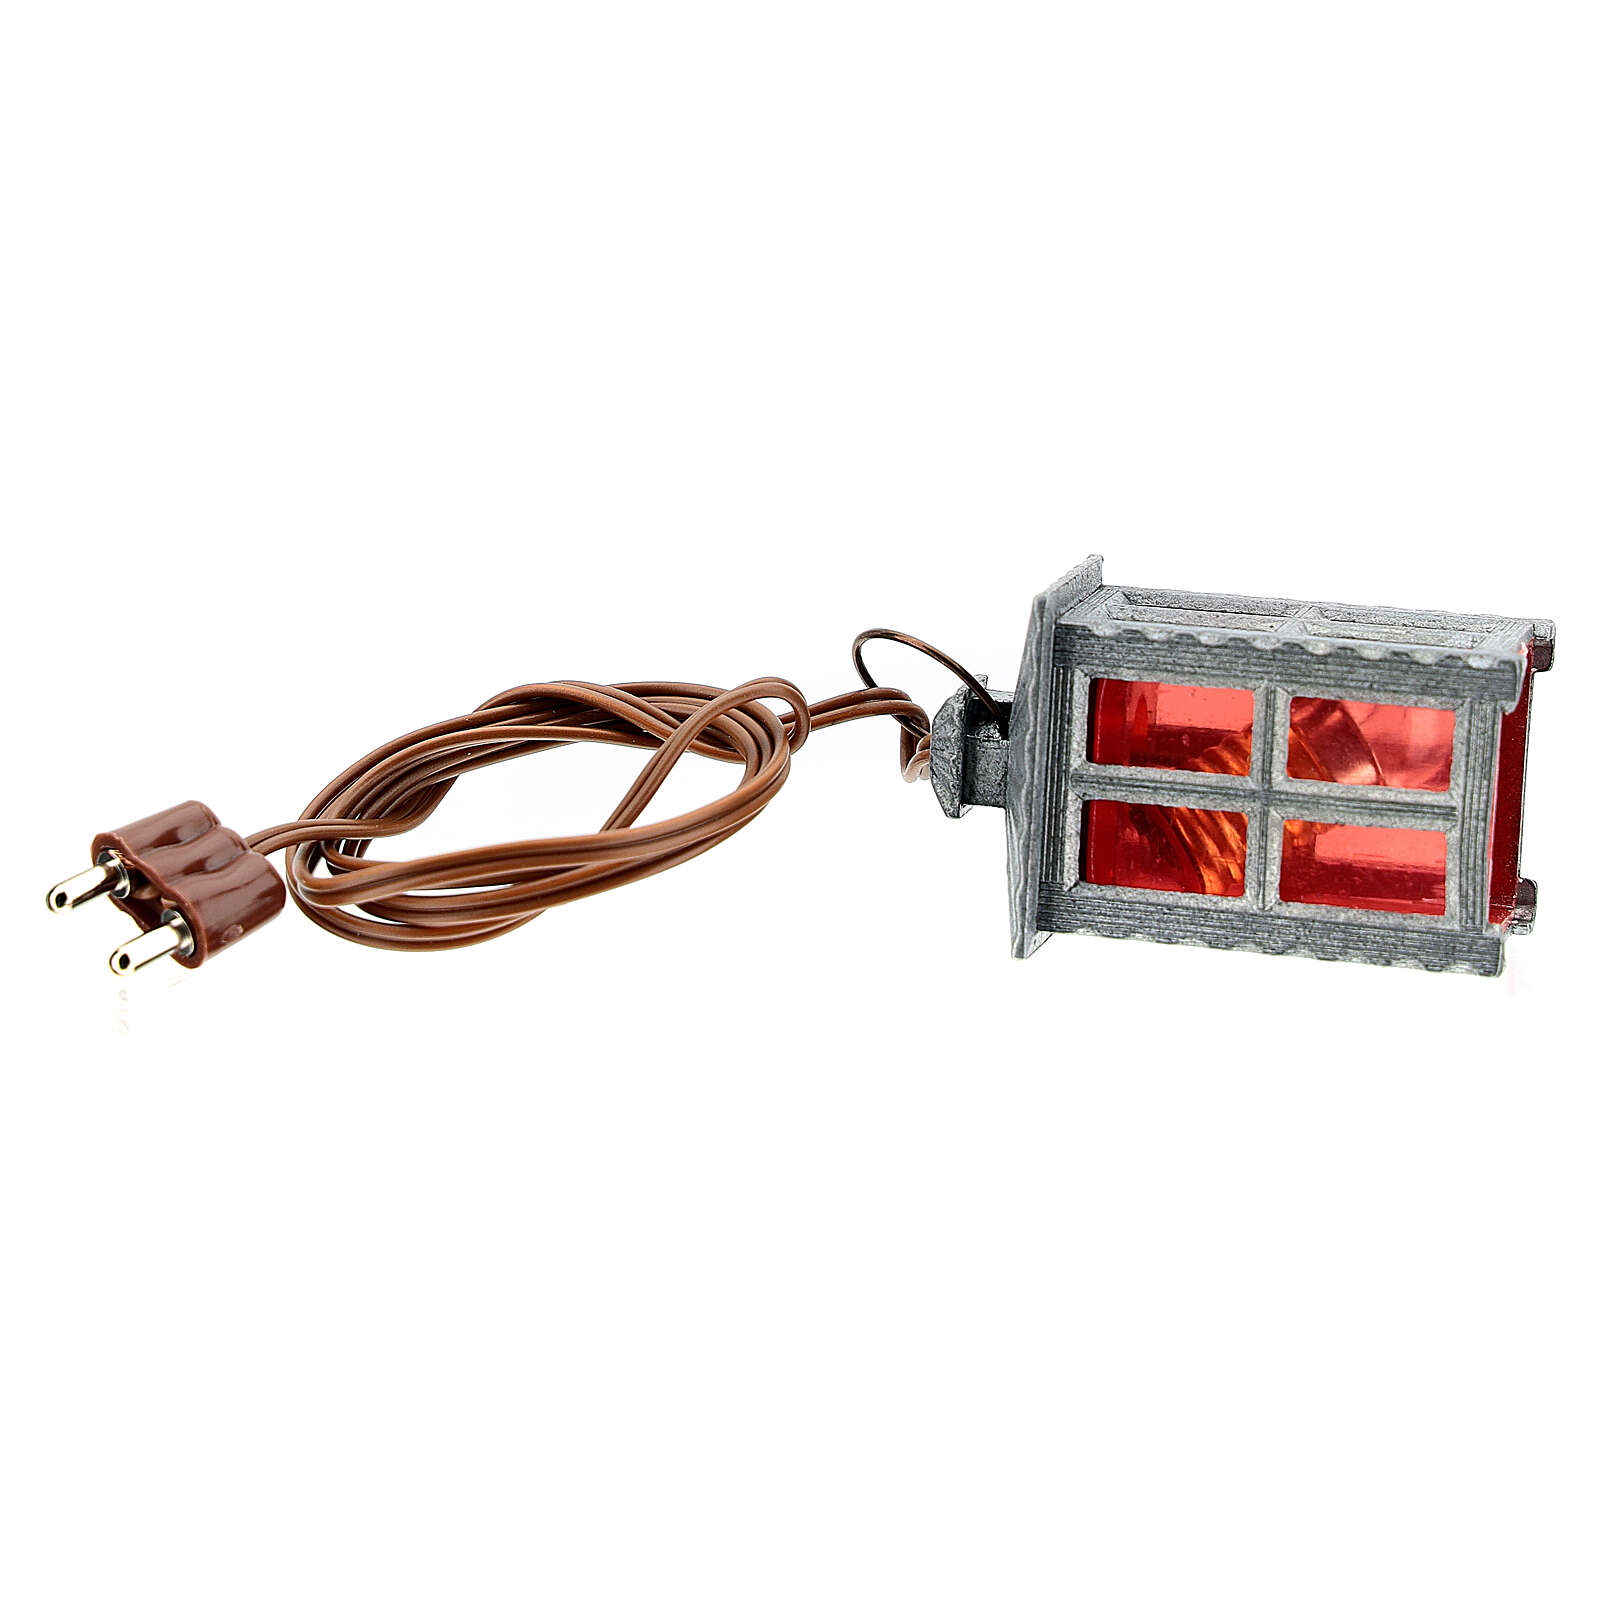 Nativity accessory, metal lamp with red light, 4cm 4